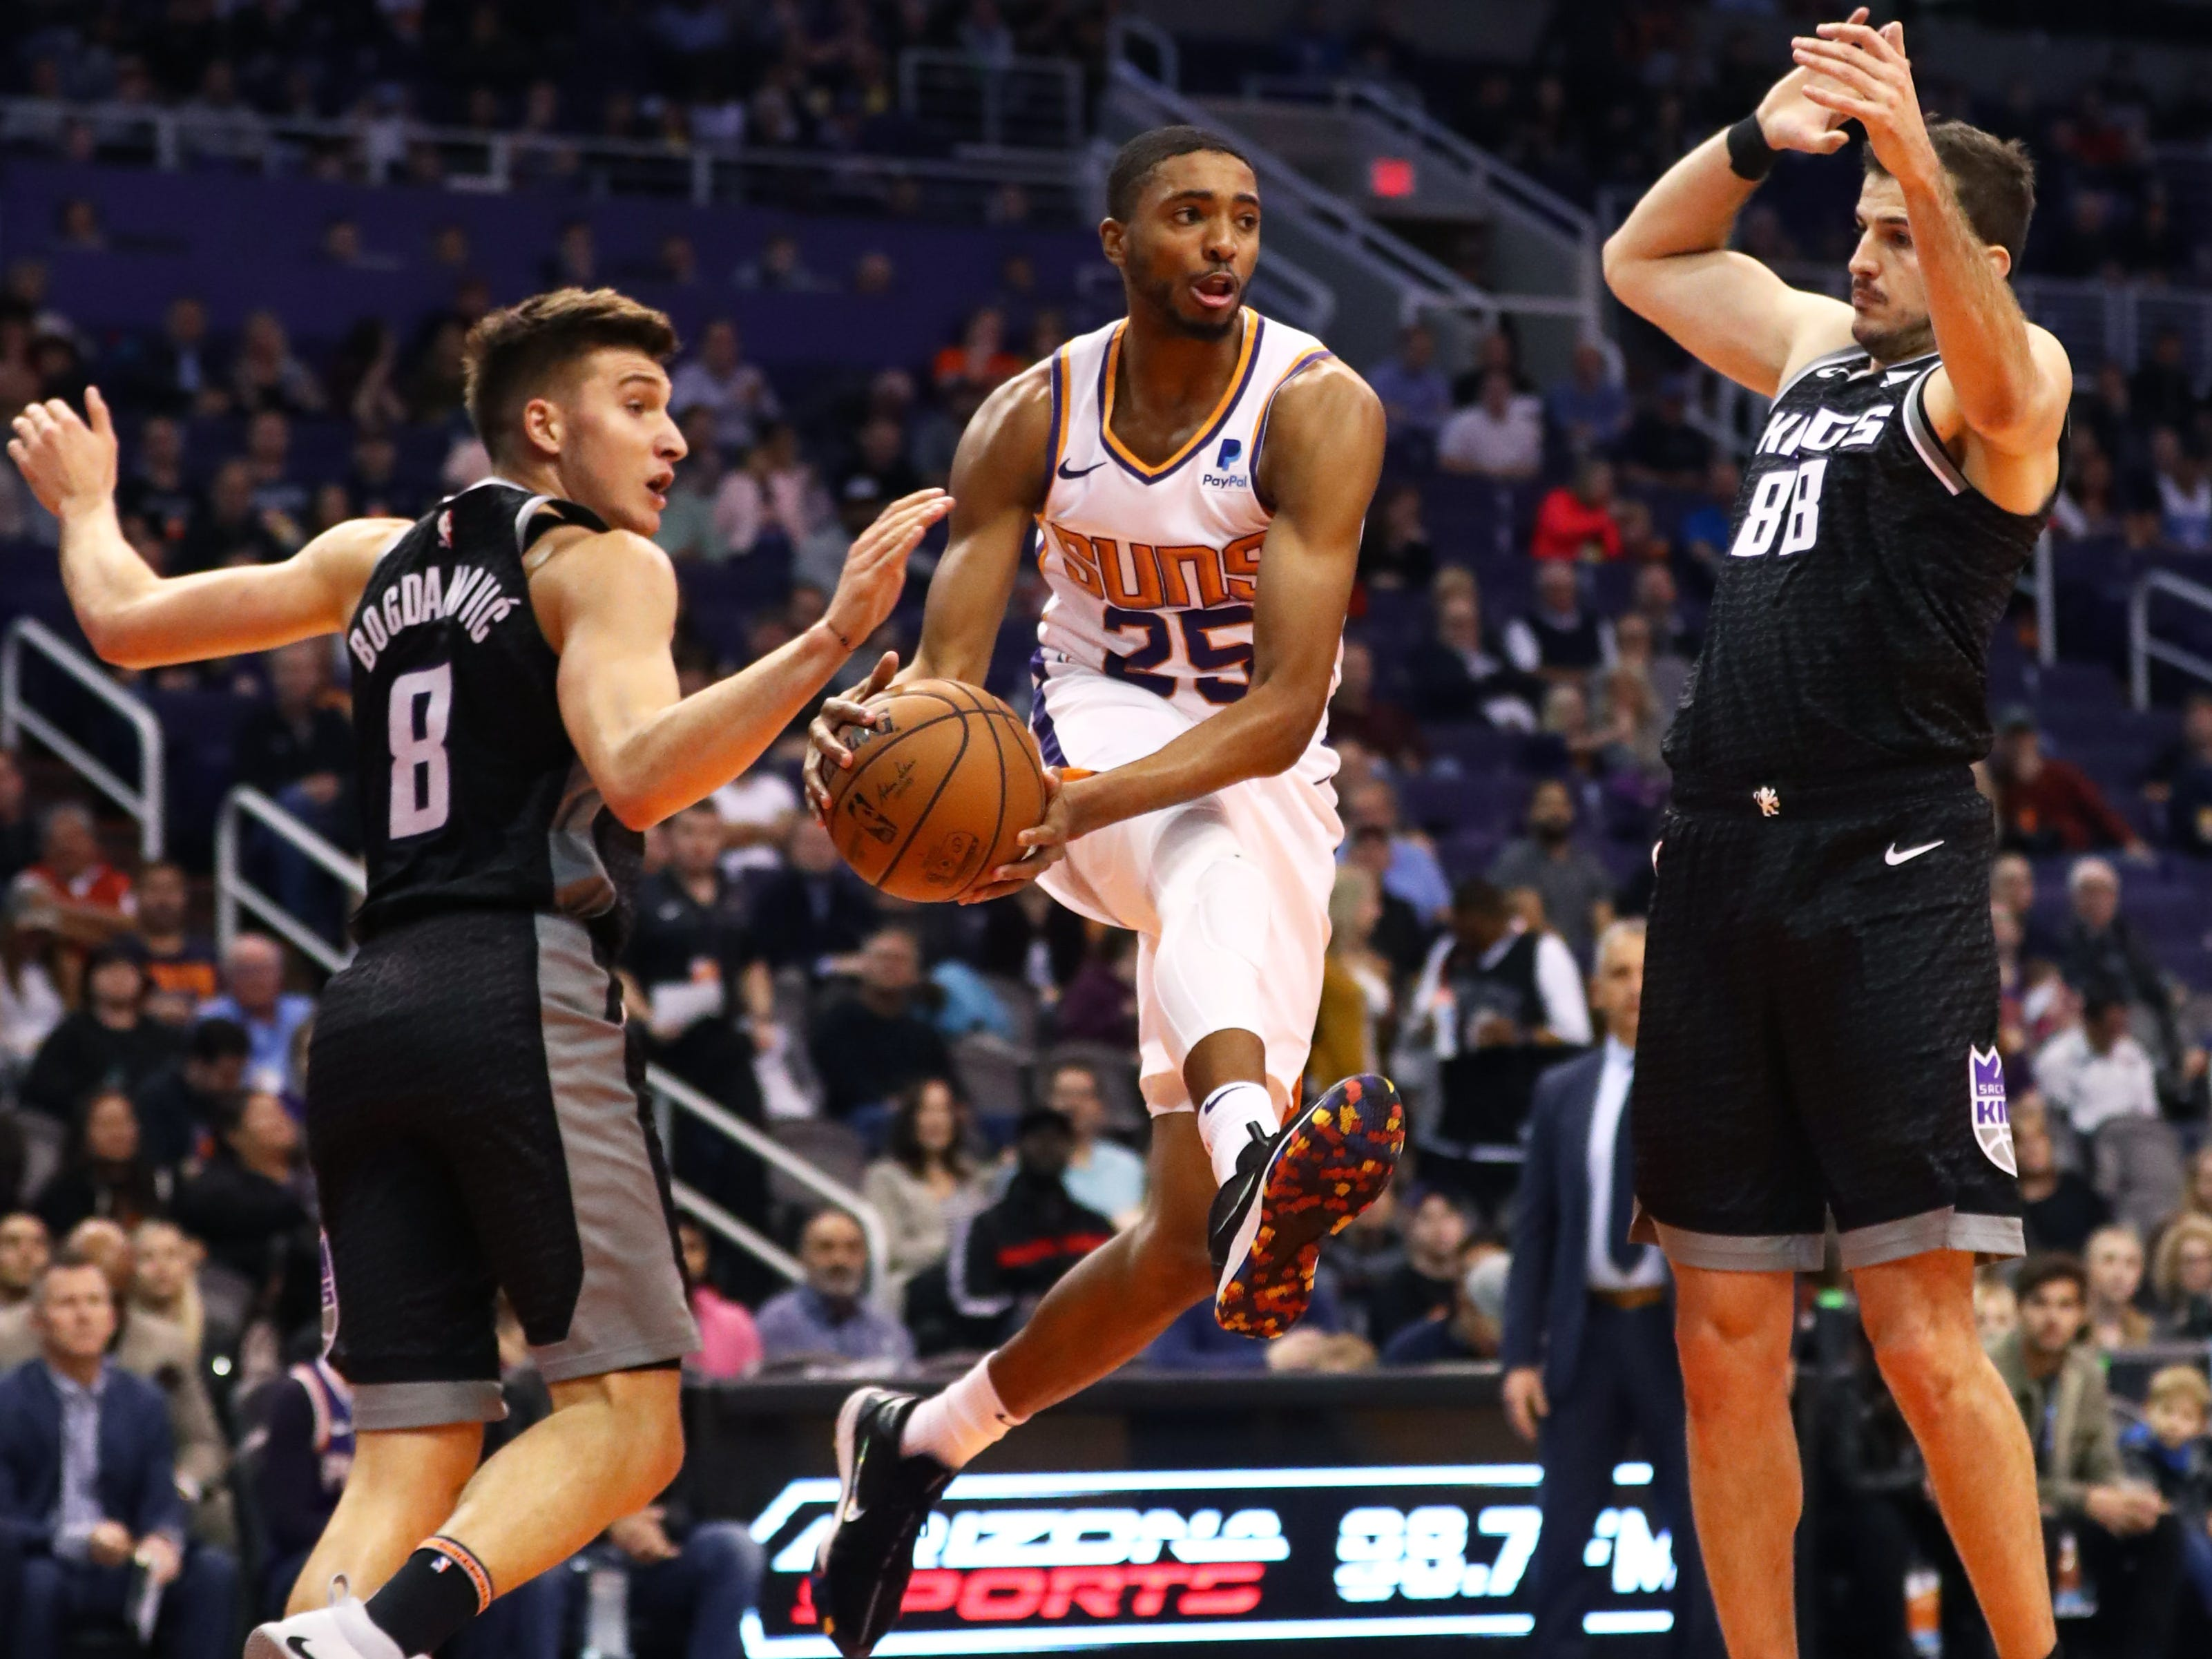 Jan 8, 2019; Phoenix, AZ, USA; Phoenix Suns forward Mikal Bridges (25) passes the ball against Sacramento Kings guard Bogdan Bogdanovic (8) and forward Nemanja Bjelica (88) in the first half at Talking Stick Resort Arena. Mandatory Credit: Mark J. Rebilas-USA TODAY Sports